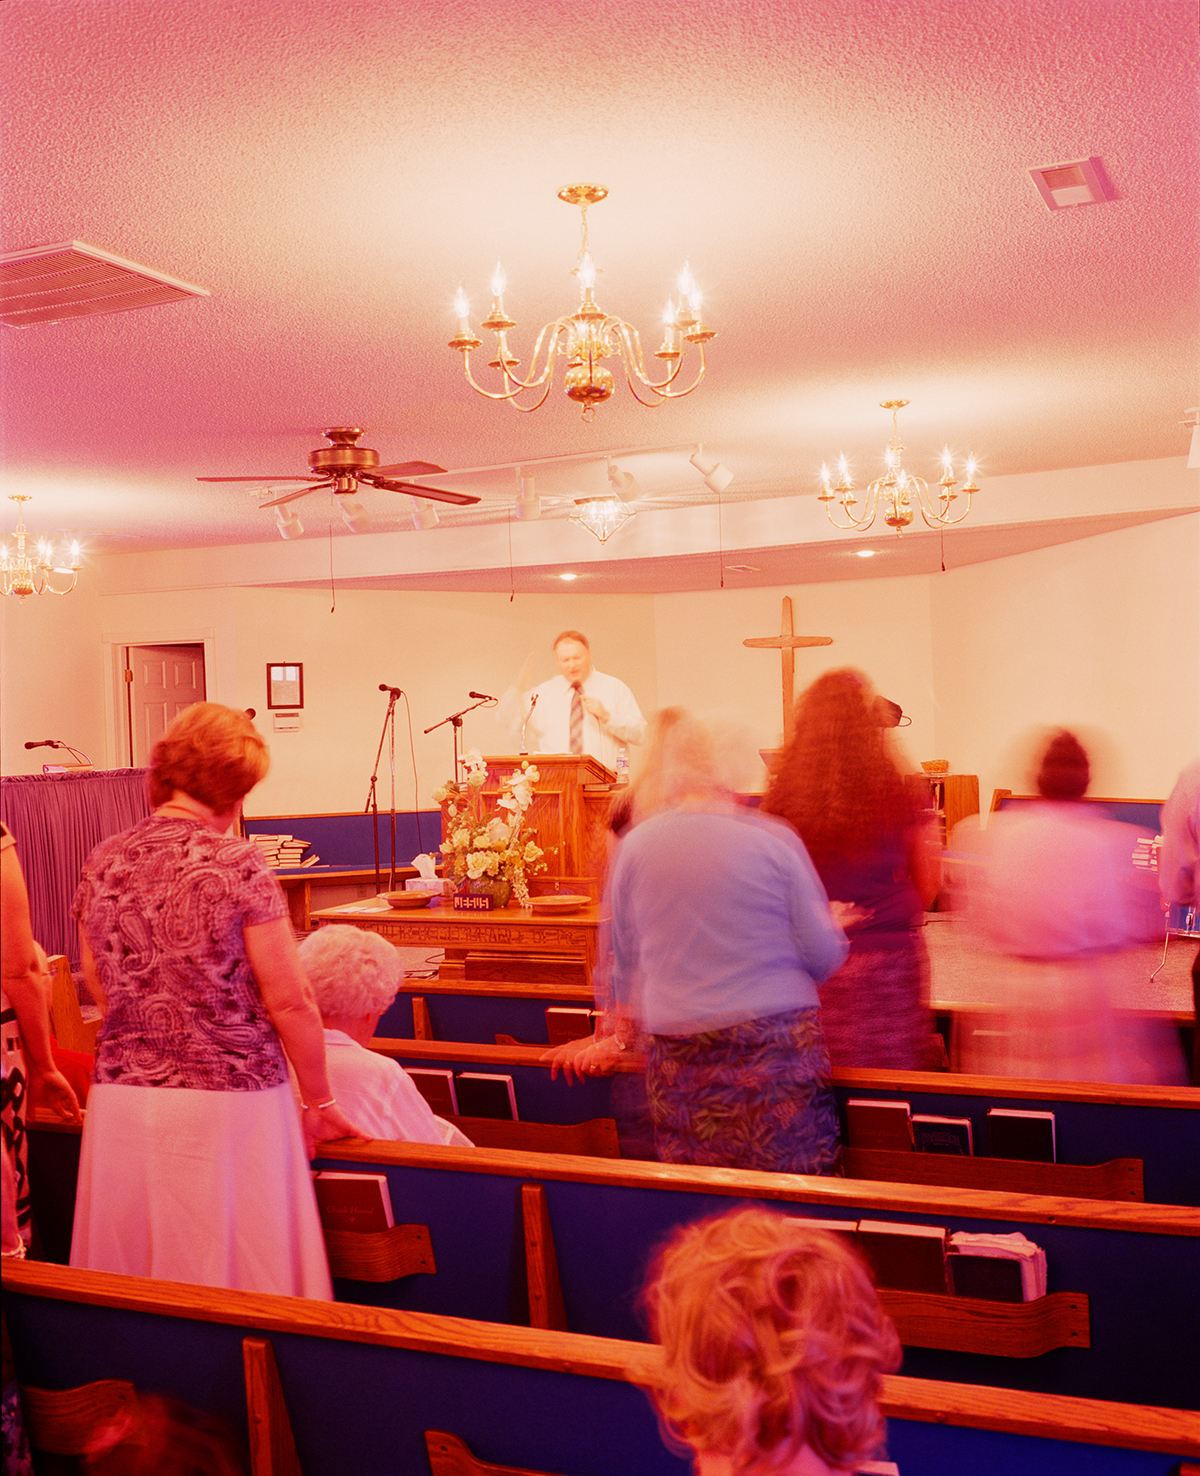 People attend a church service.